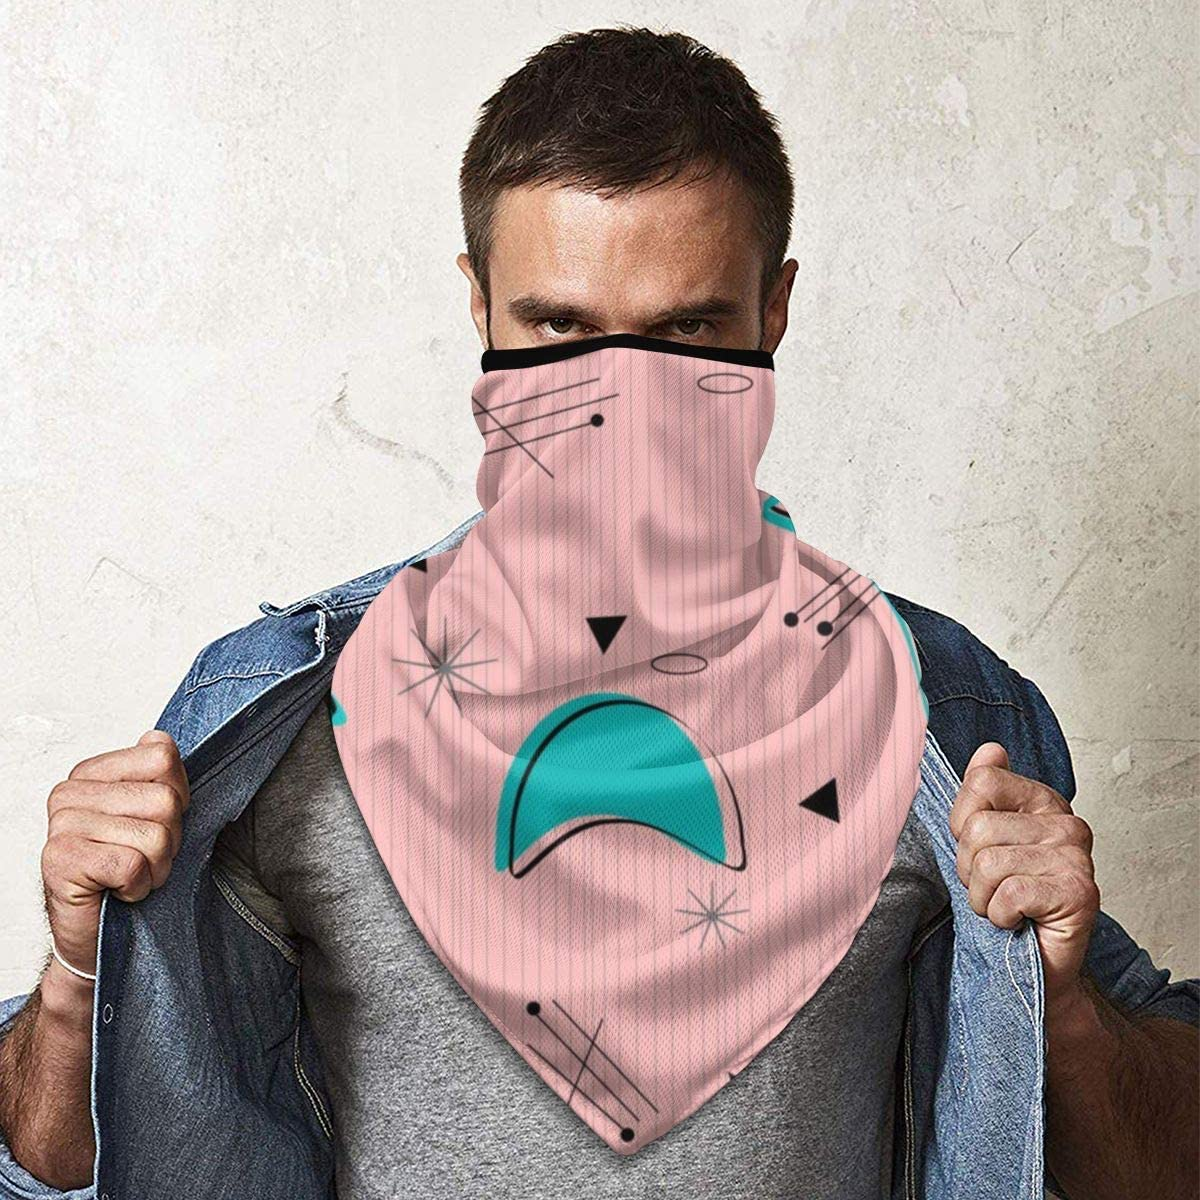 Wind-Resistant Face Mask/& Neck Gaiter,Balaclava Ski Masks,Breathable Tactical Hood,Windproof Face Warmer for Running,Motorcycling,Hiking-Mid Century Pink Teal Boomerangs